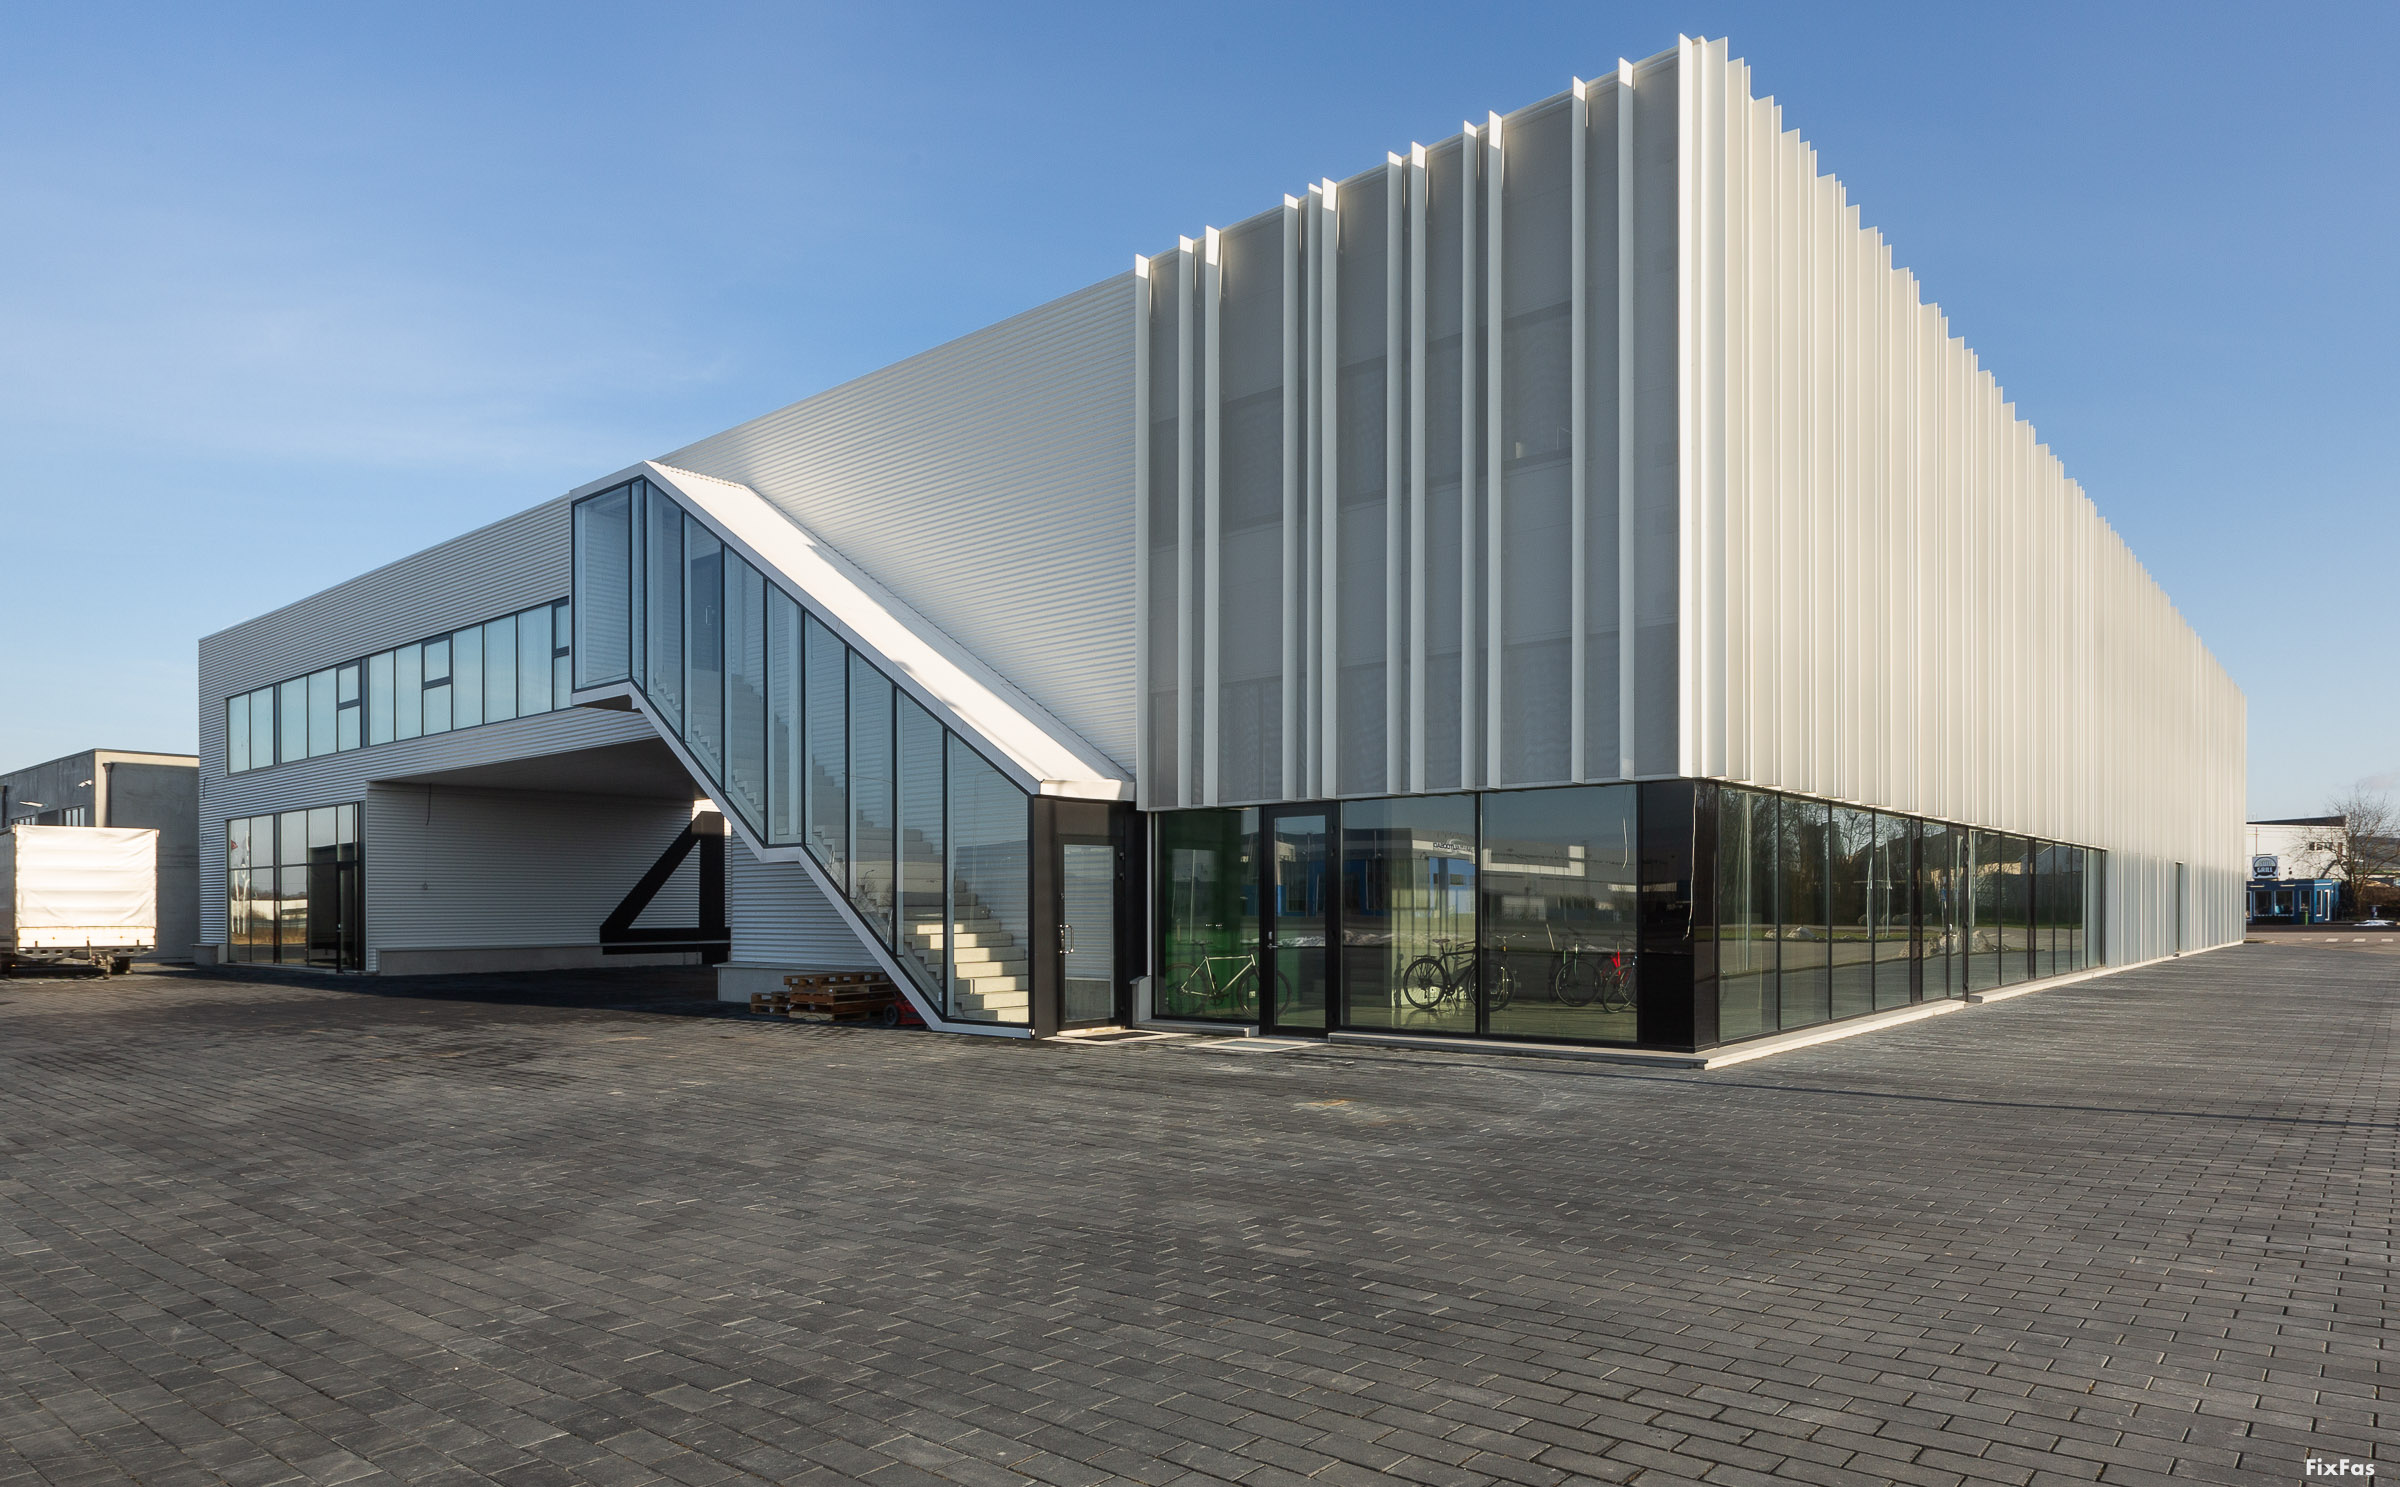 Warehouse with white fabric facade.